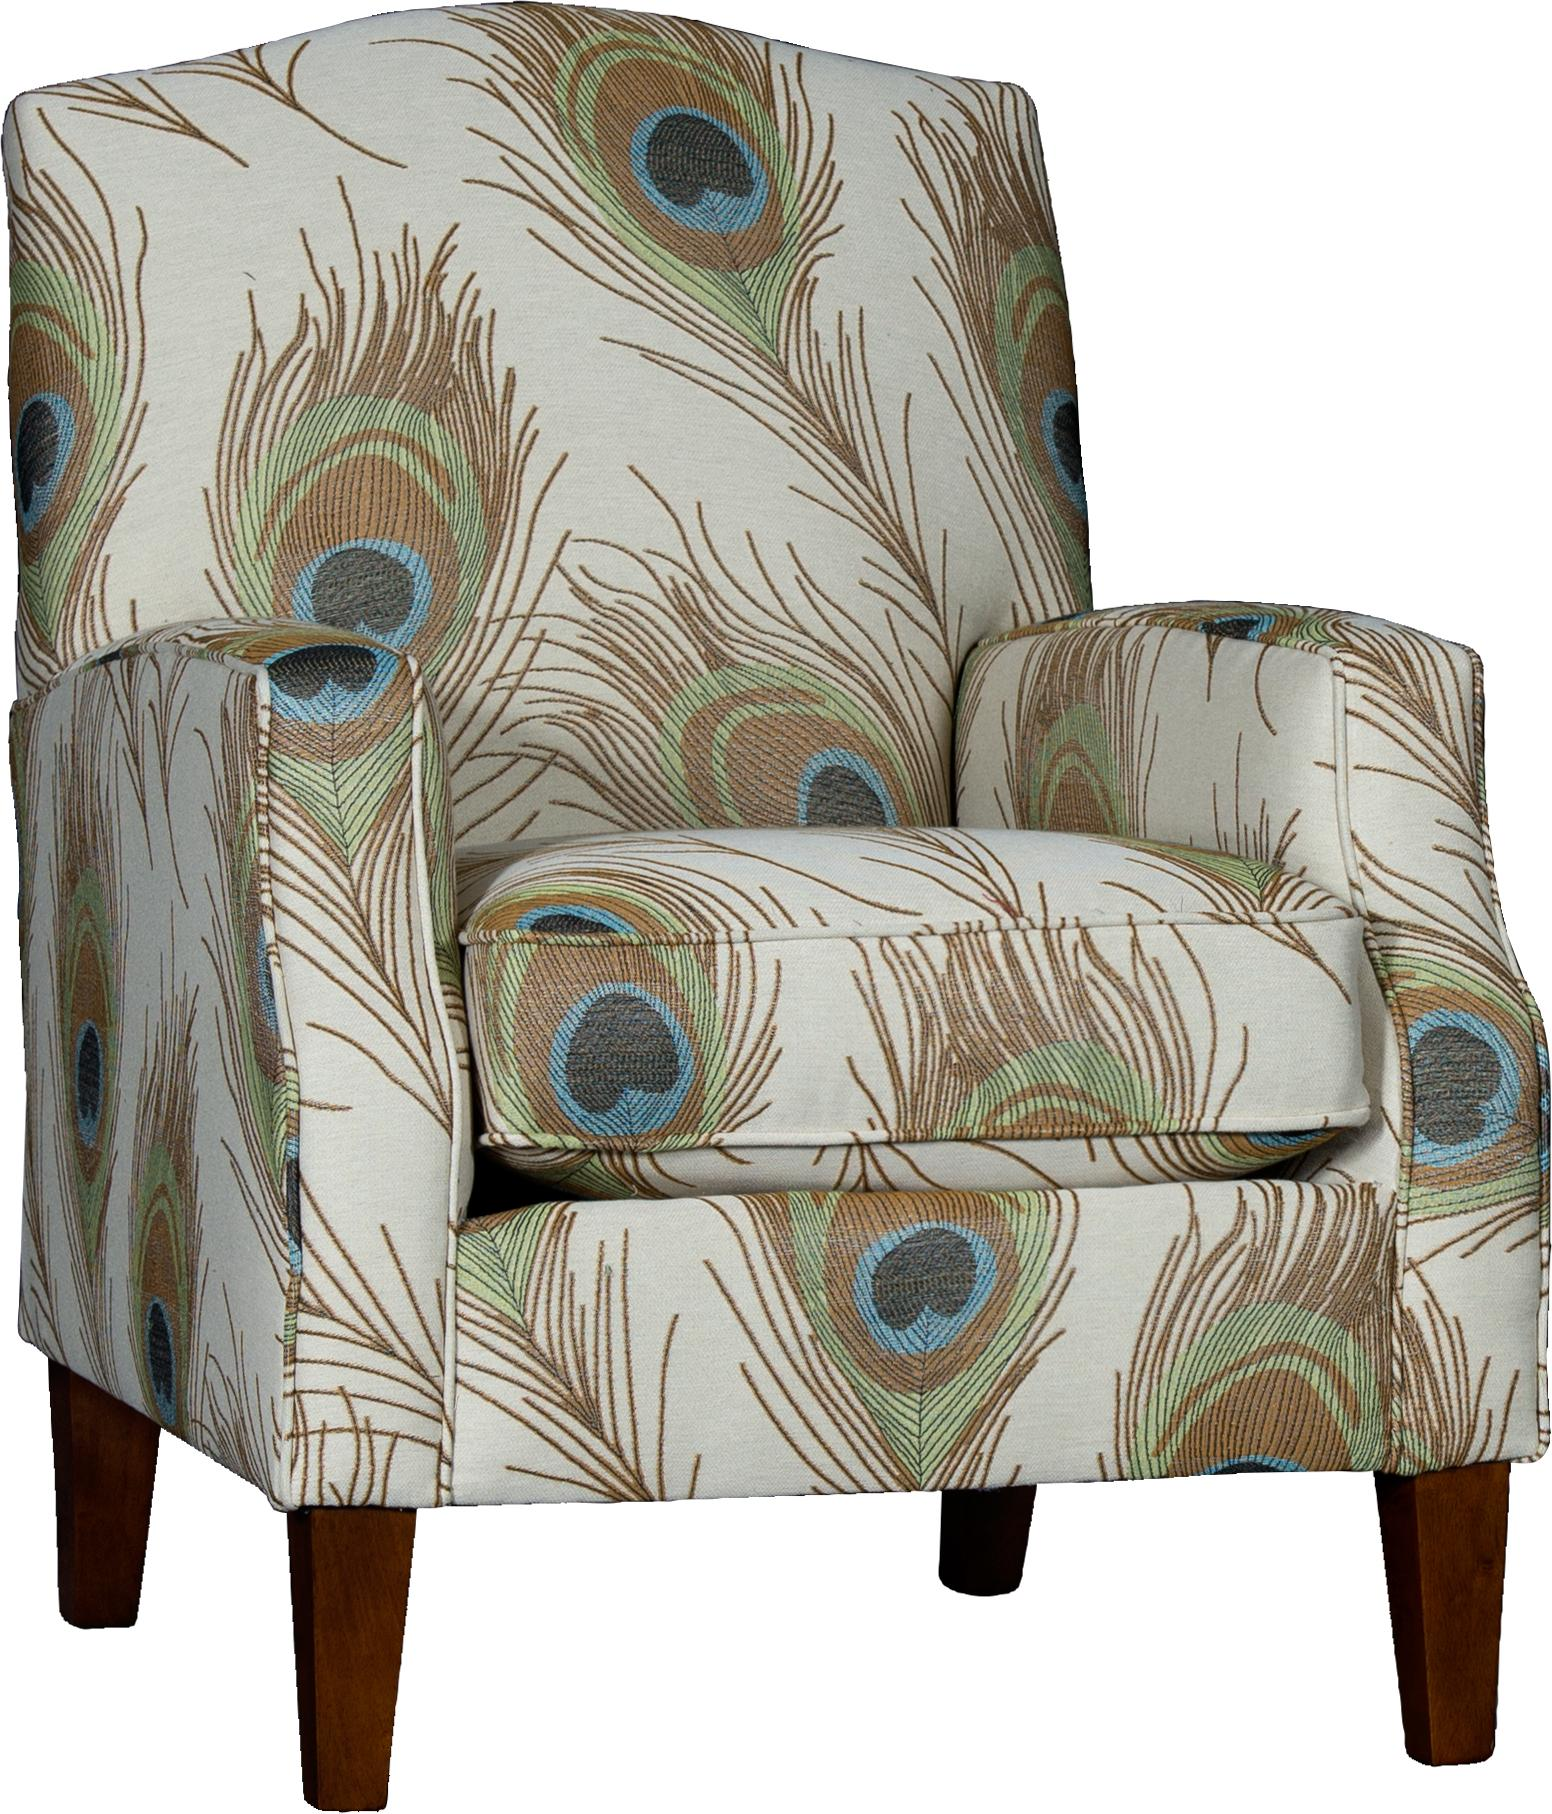 3725 Chair by Mayo at Wilcox Furniture